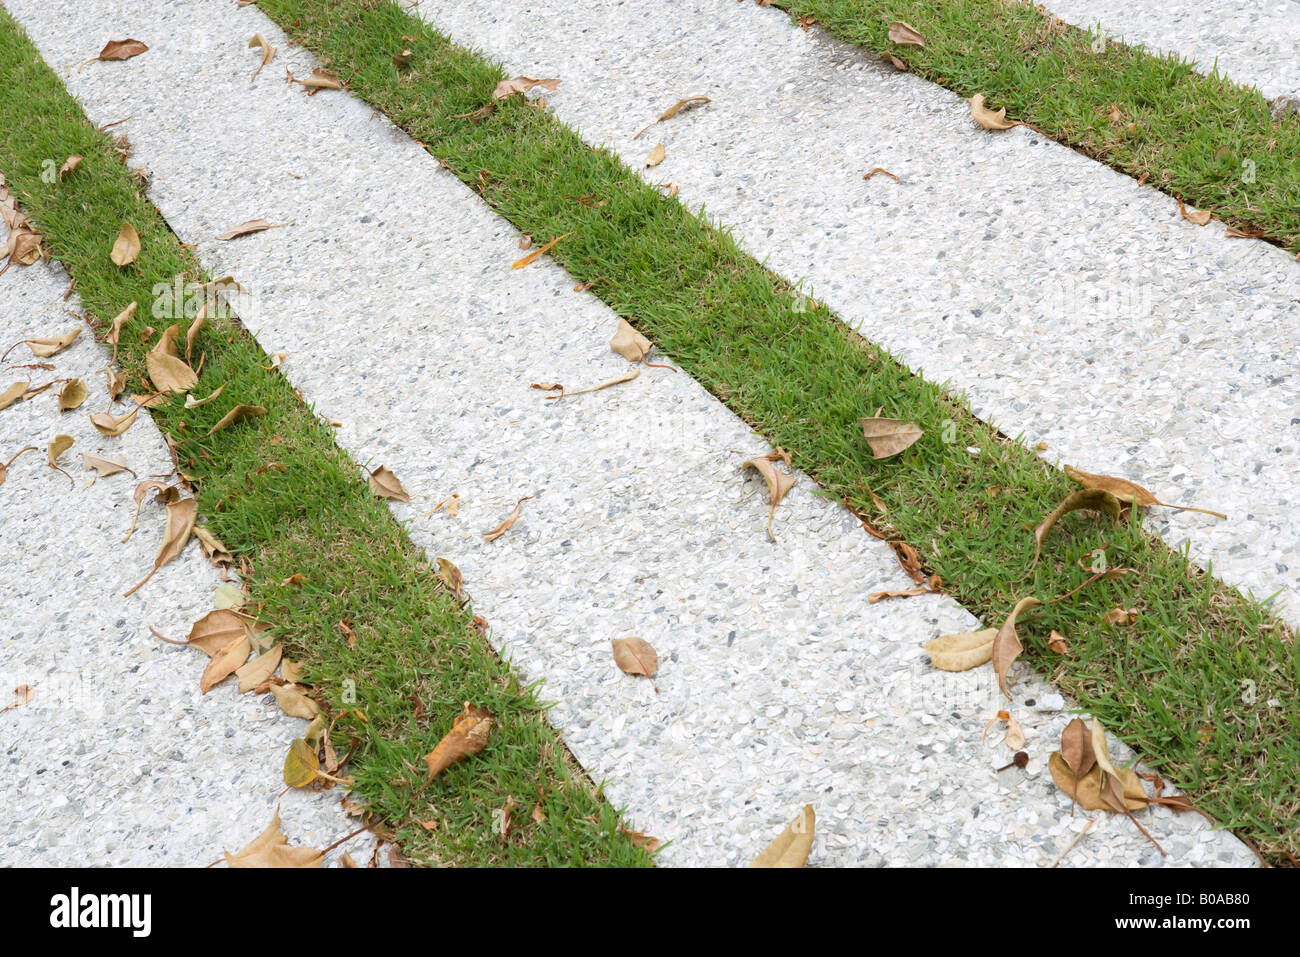 Paving stones and grass, close-up - Stock Image